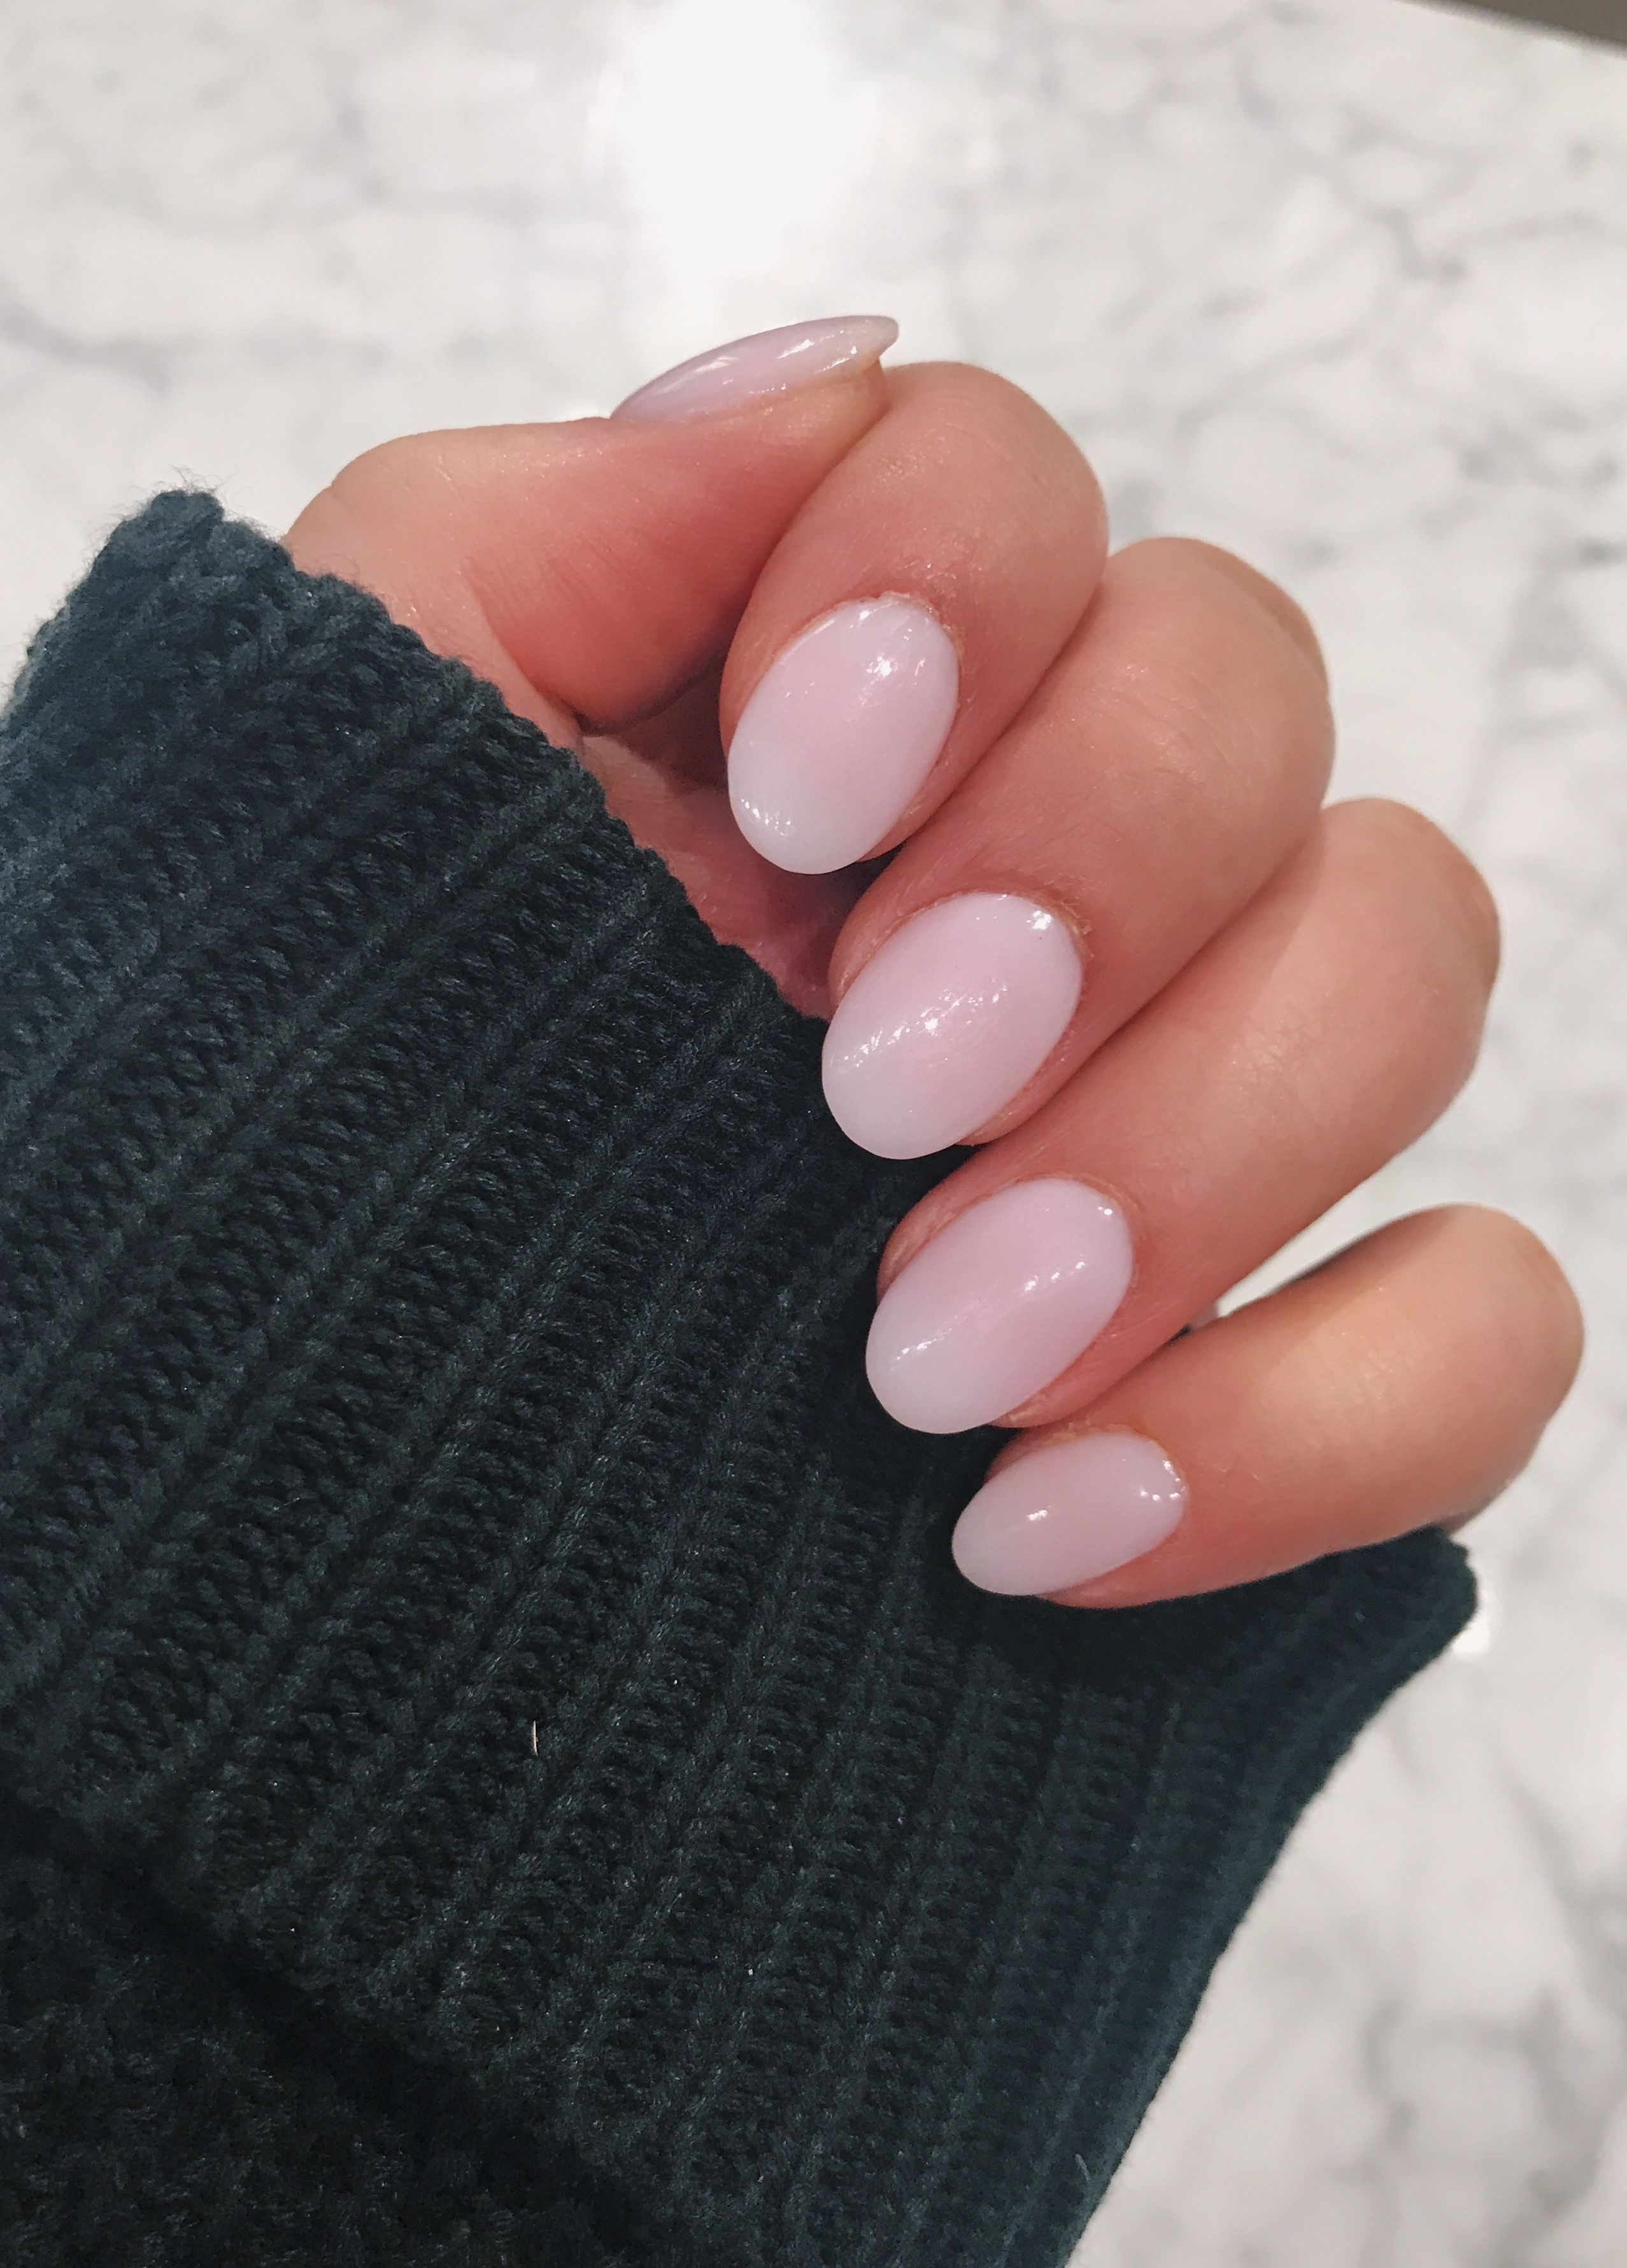 Pin By Madeline On Nails In 2020 Oval Acrylic Nails Light Pink Acrylic Nails Pink Acrylic Nails